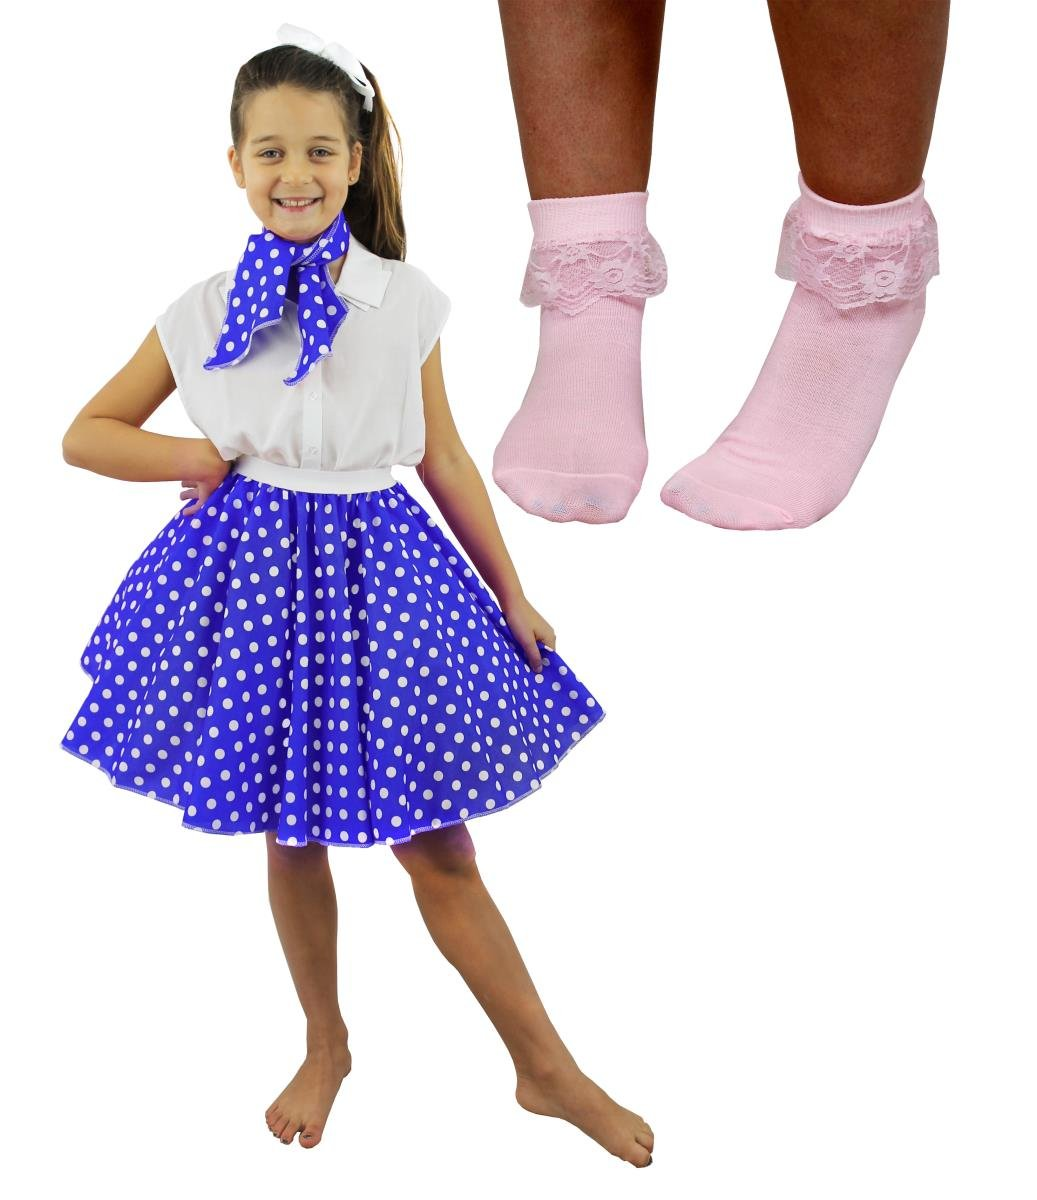 66113385837 CHILDS DELUXE ROCK N ROLL SKIRT FANCY DRESS COSTUME SET - BLACK POLKA DOT  SKIRT - 50 S STYLE SKIRT WITH MATCHING NECK SCARF AND BOBBY SOCKS - ONE  SIZE IDEAL ...